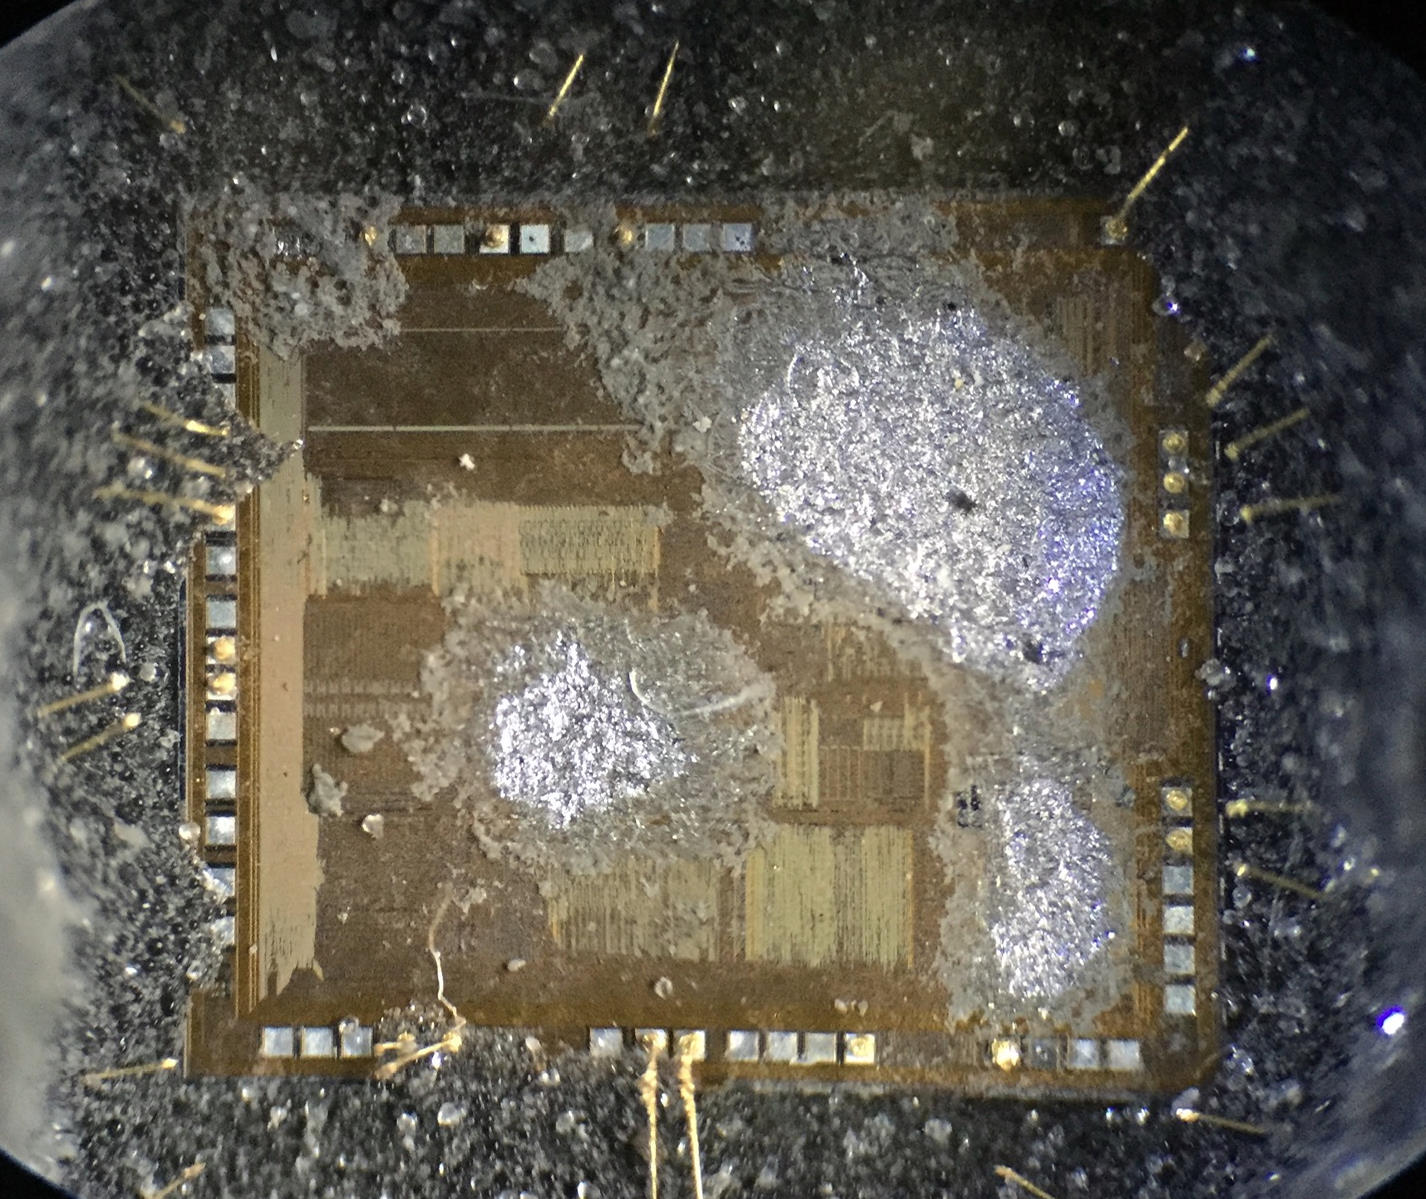 Damaged die from drilling too deep